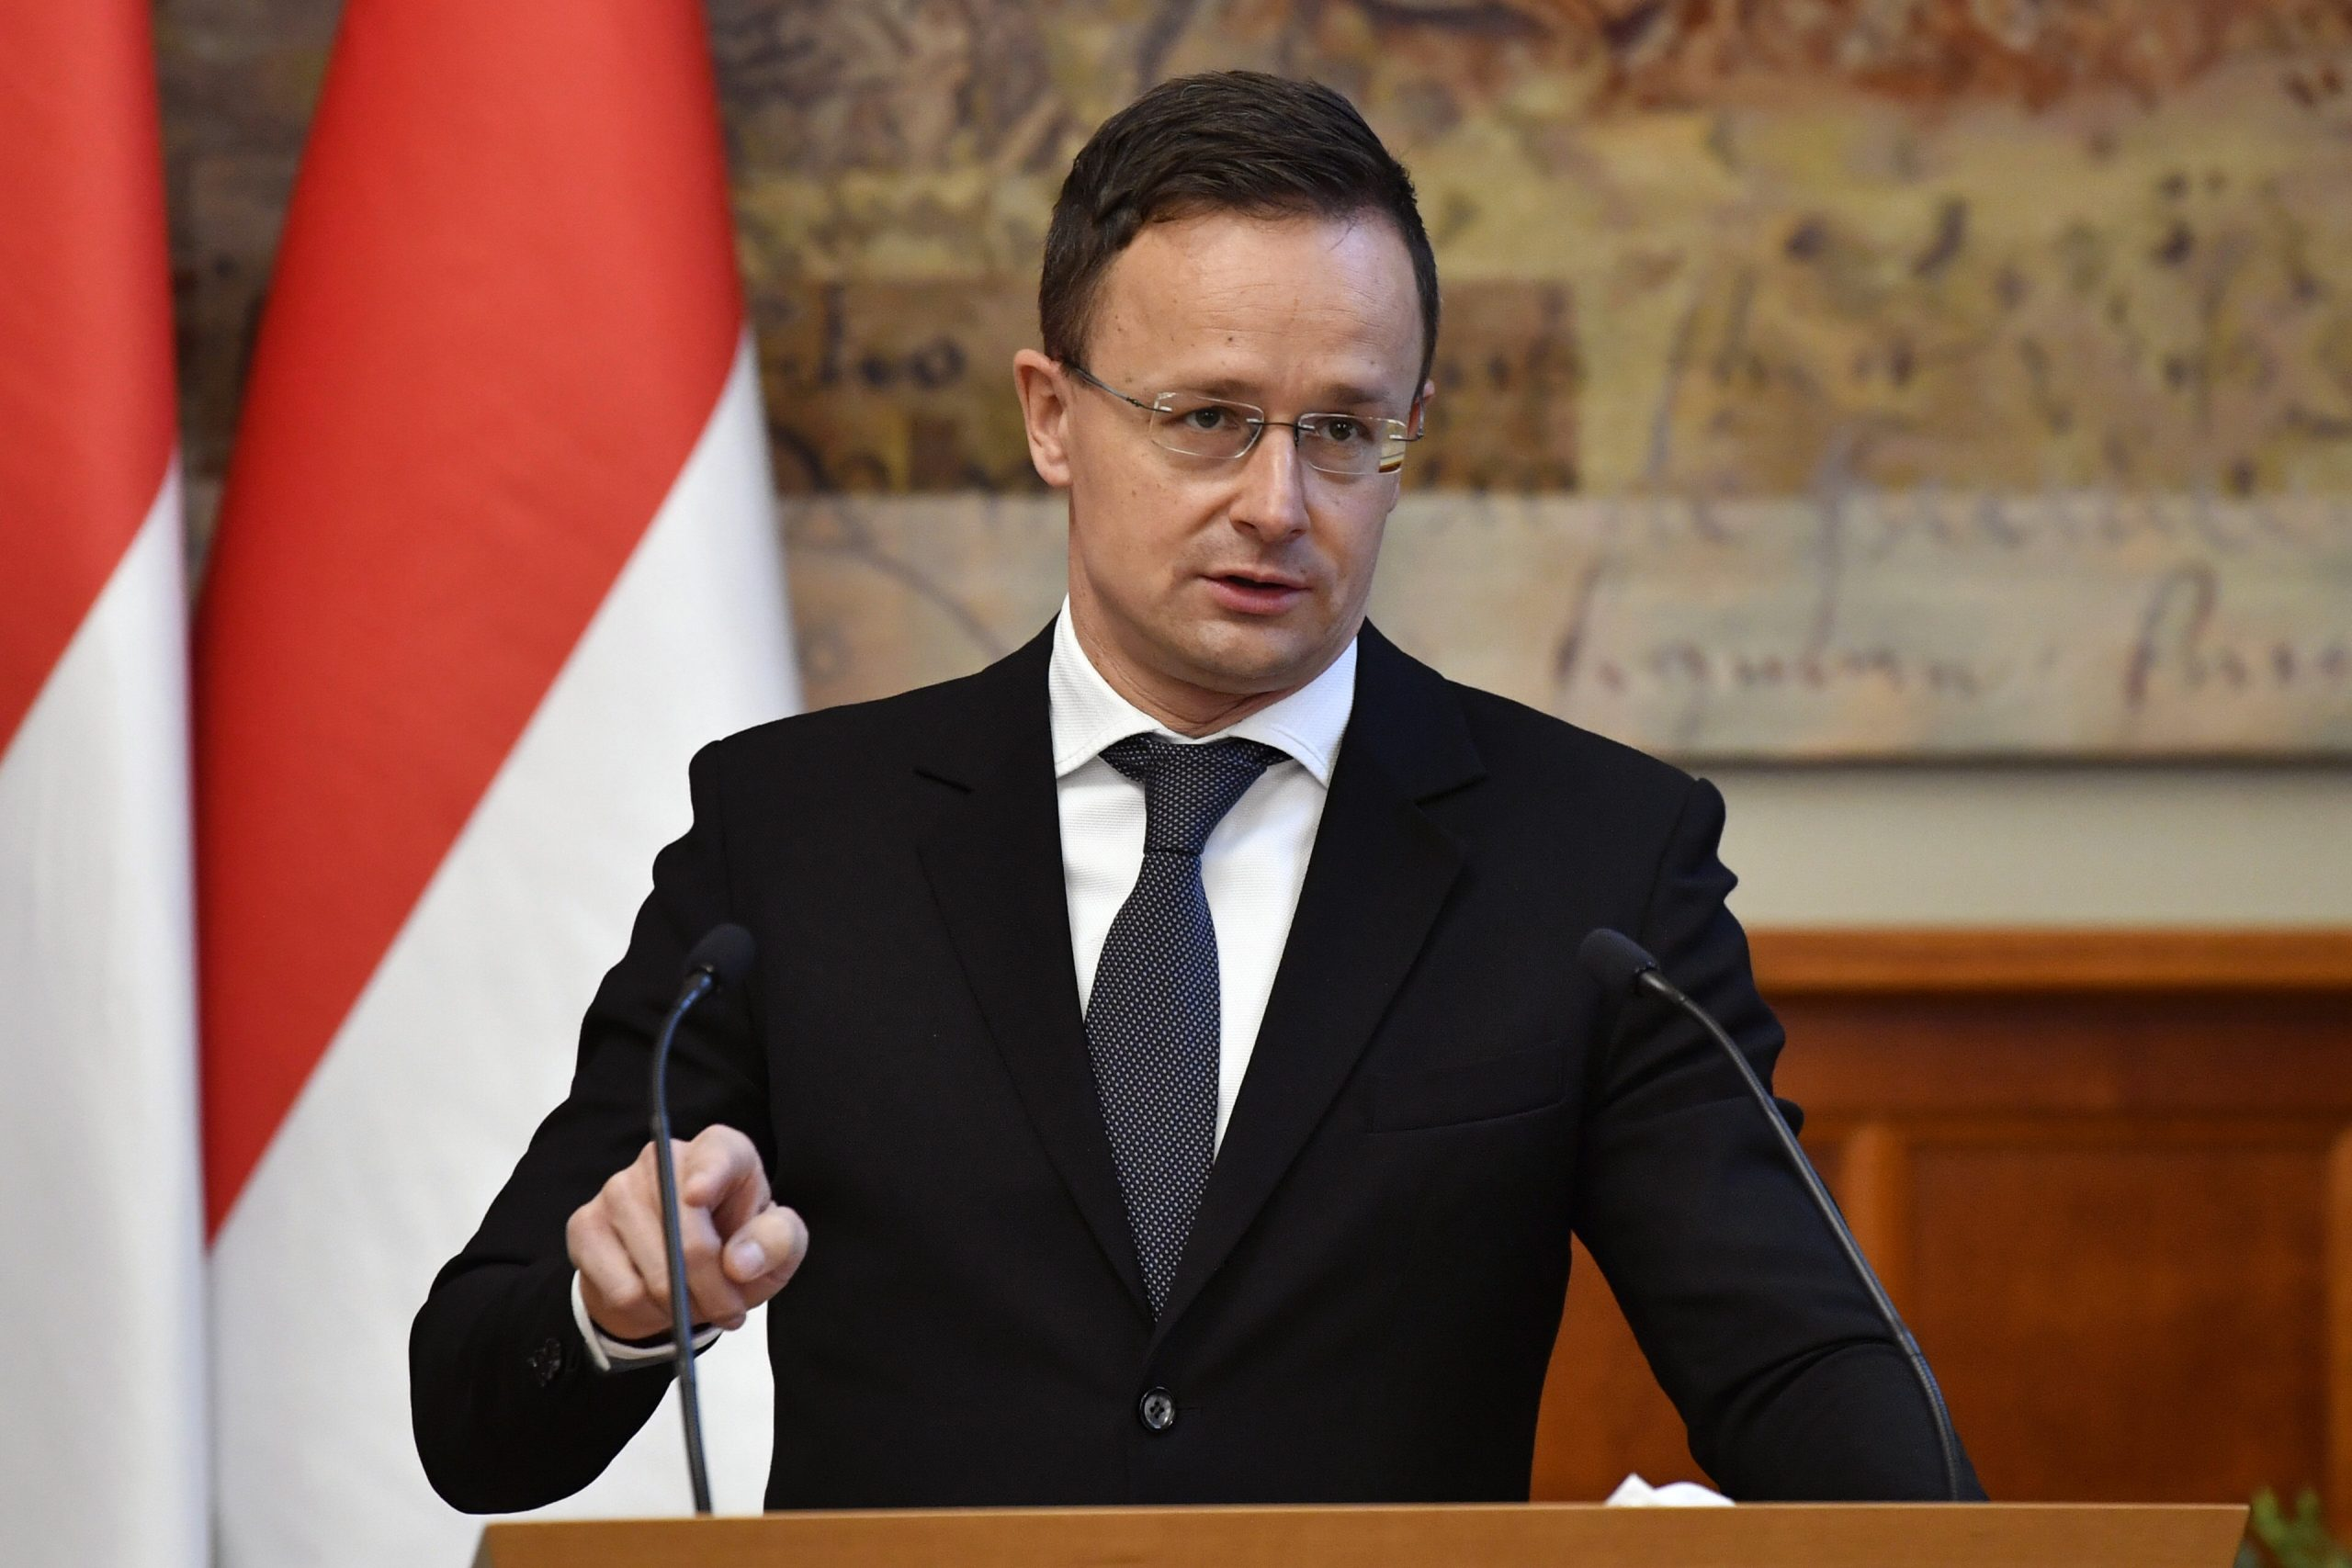 Szijjártó: Ukraine Using 'Darkest Intimidation Methods' against Citizens